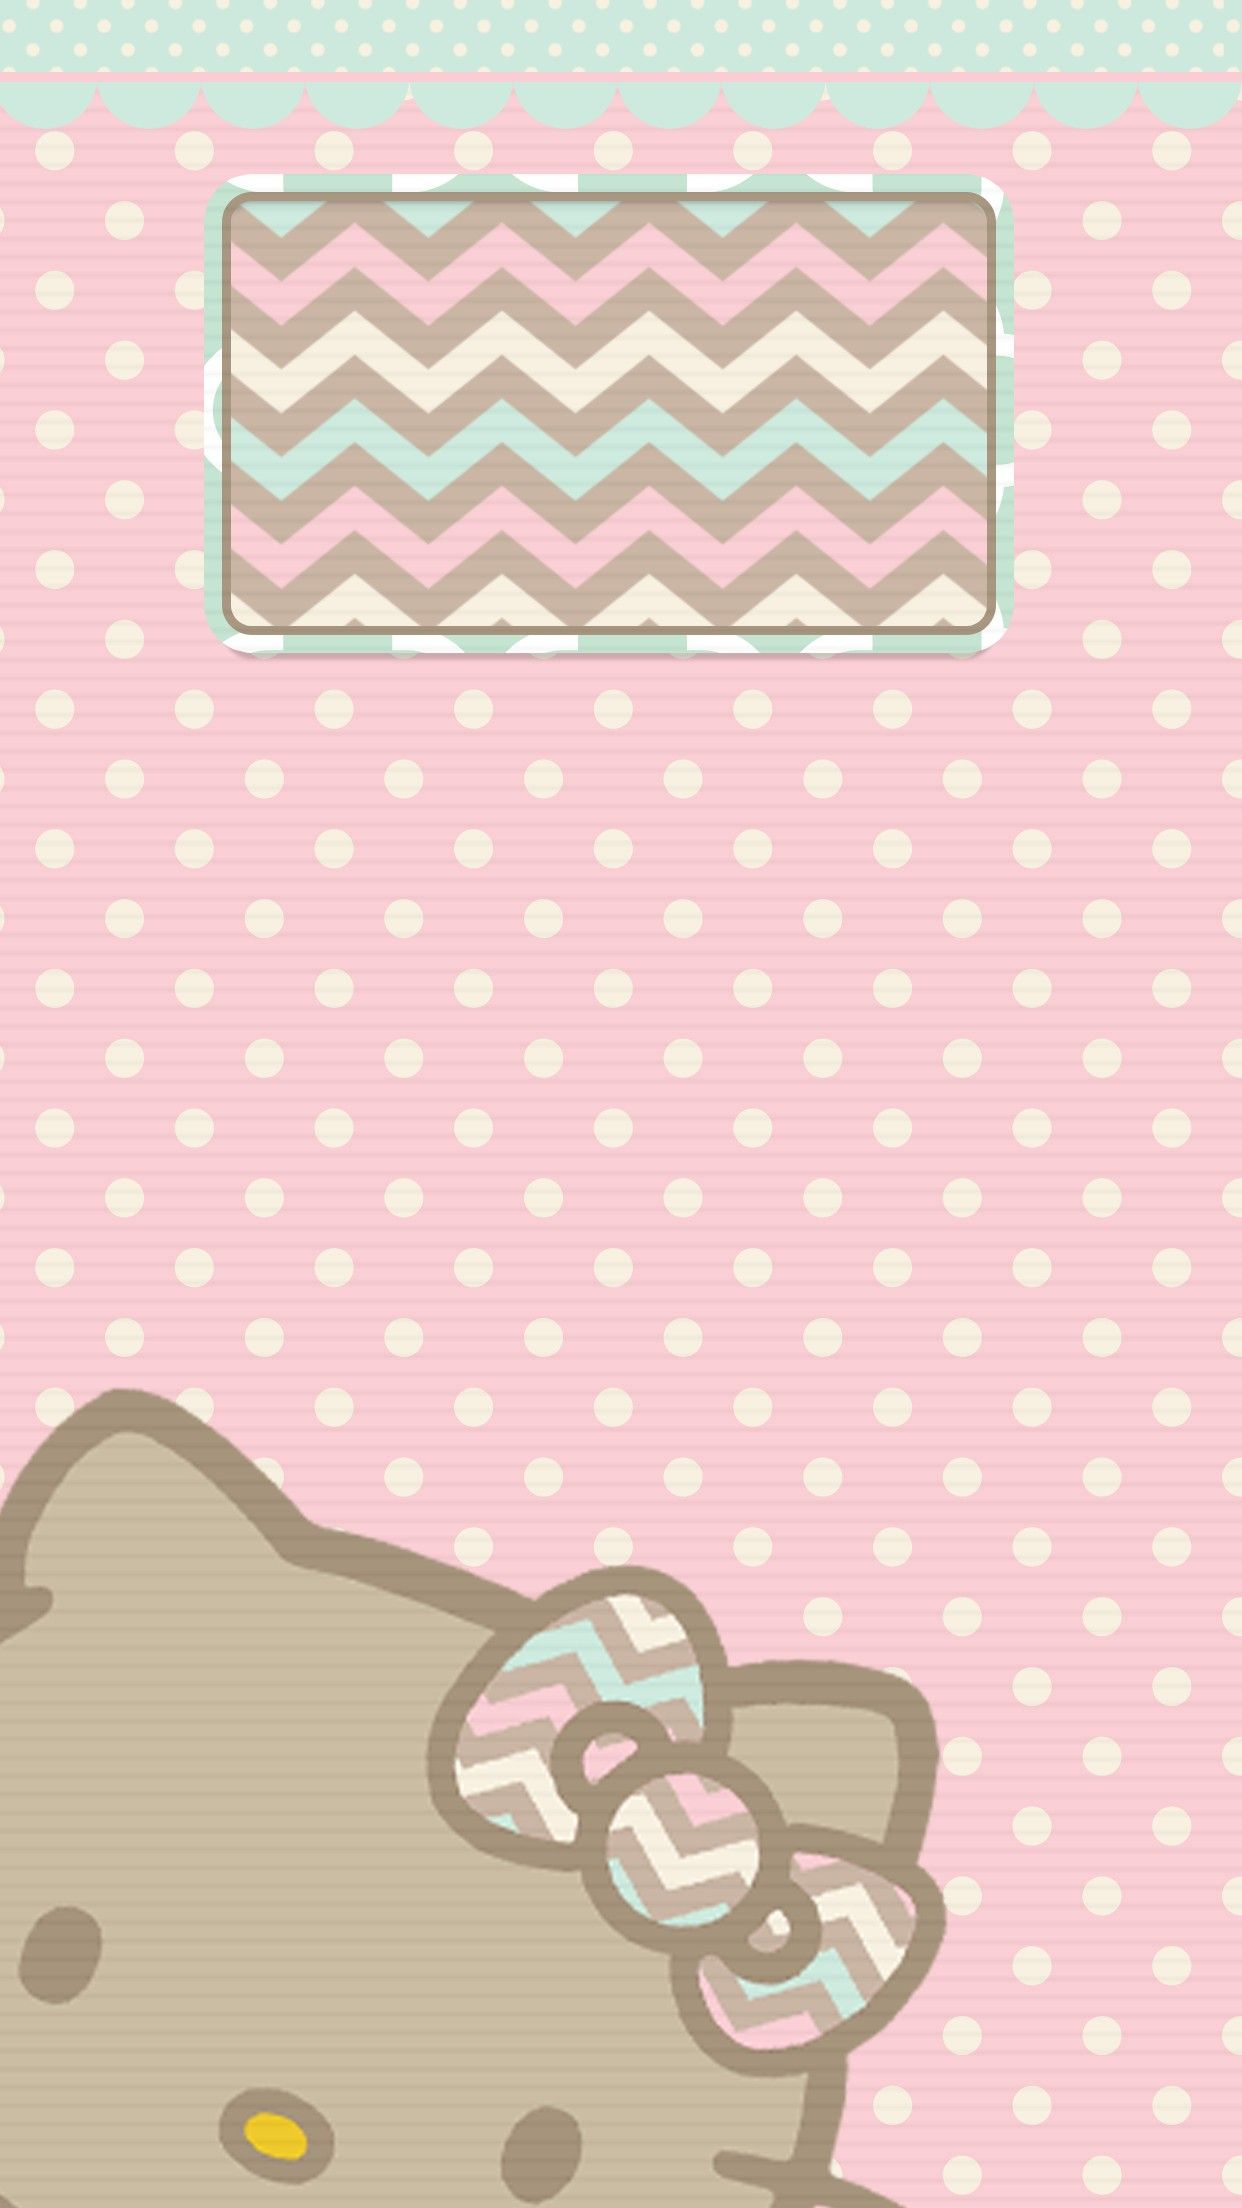 Iphone Wall Hk Tjn Pink Wallpaper Iphone Wallpaper Iphone Cute Hello Kitty Backgrounds